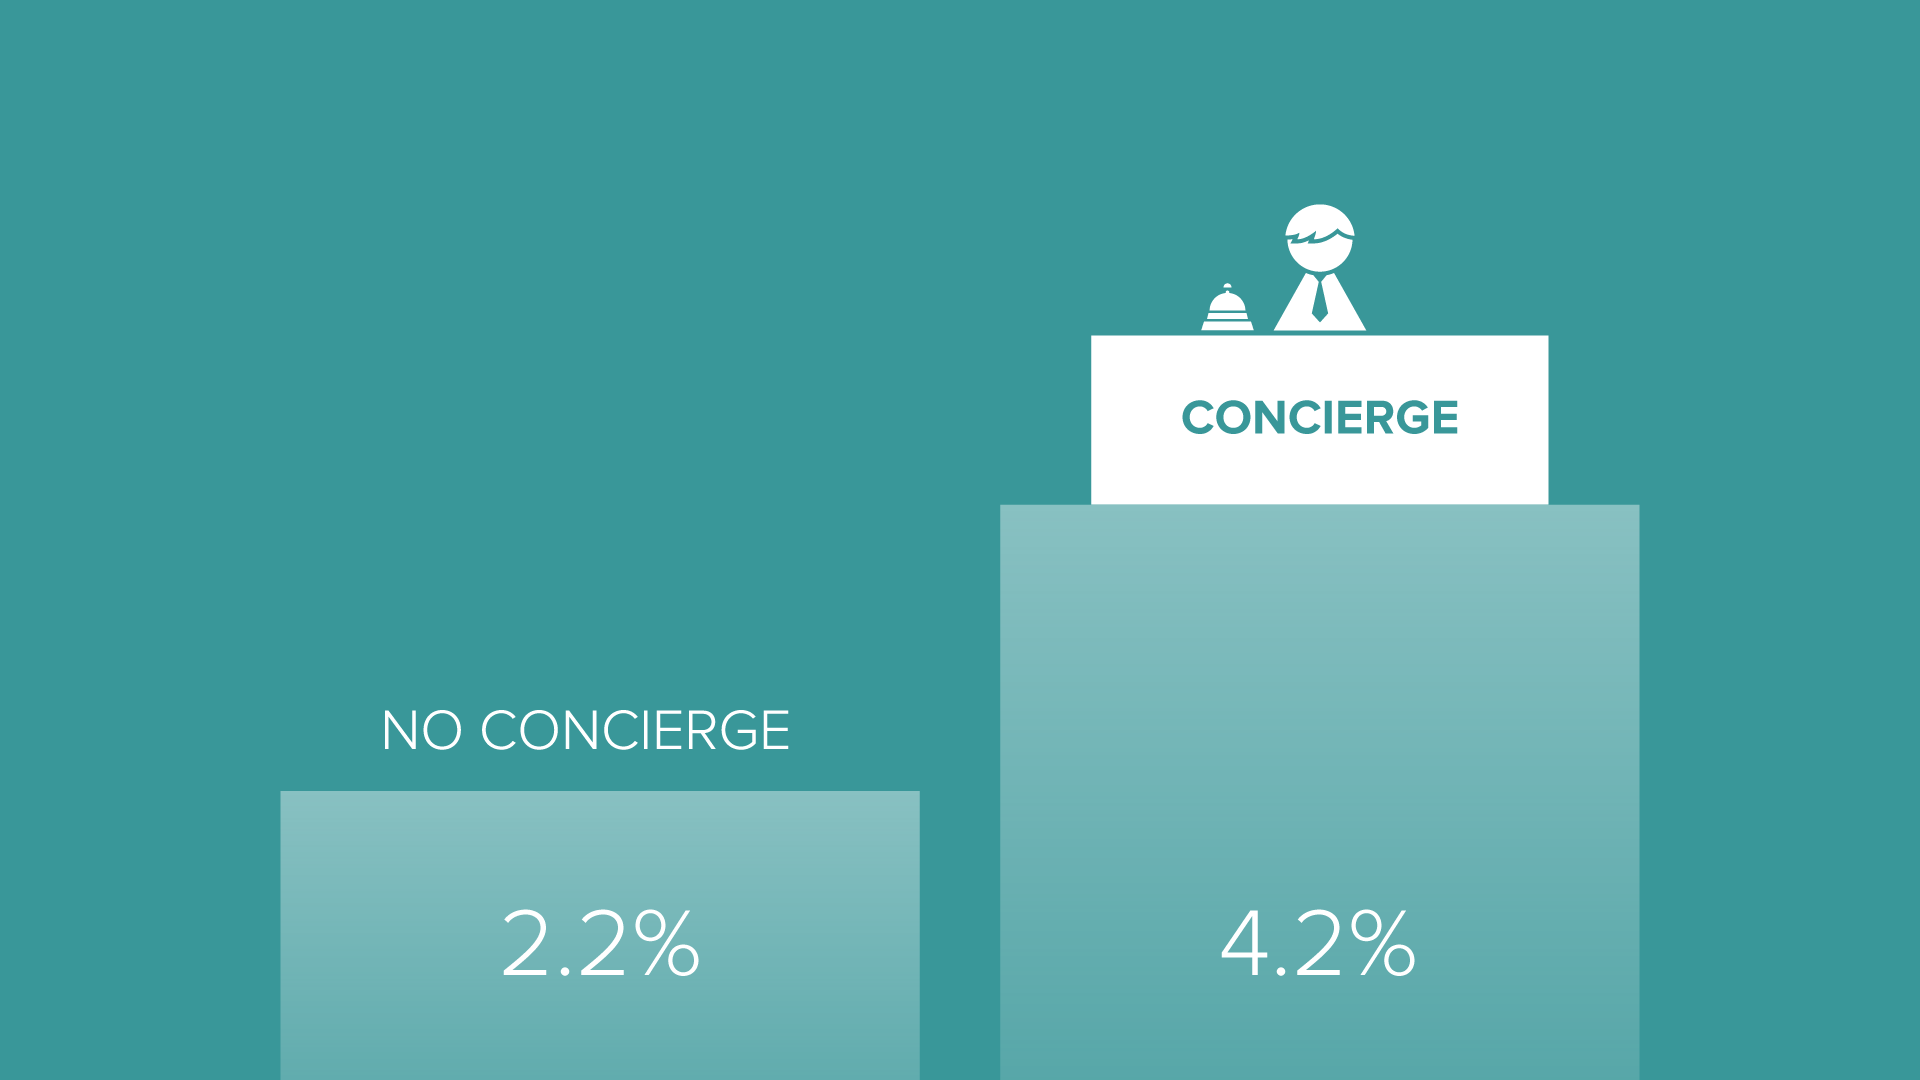 Concierge onboarding doubled conversions